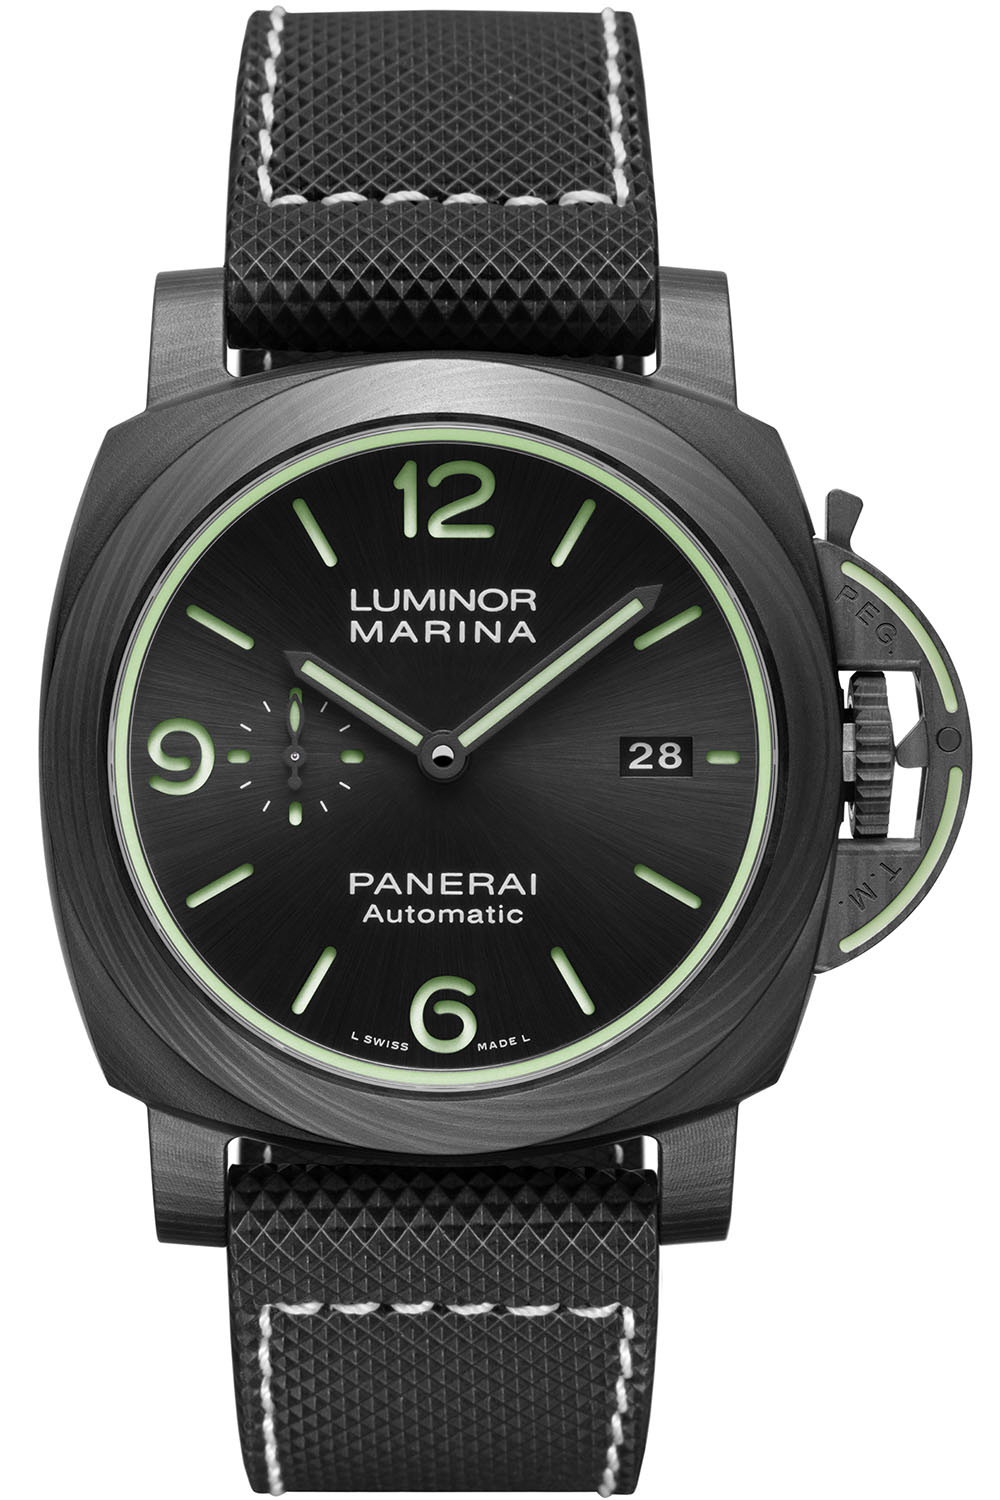 2020 Panerai Luminor Marina PAM1118 - 1